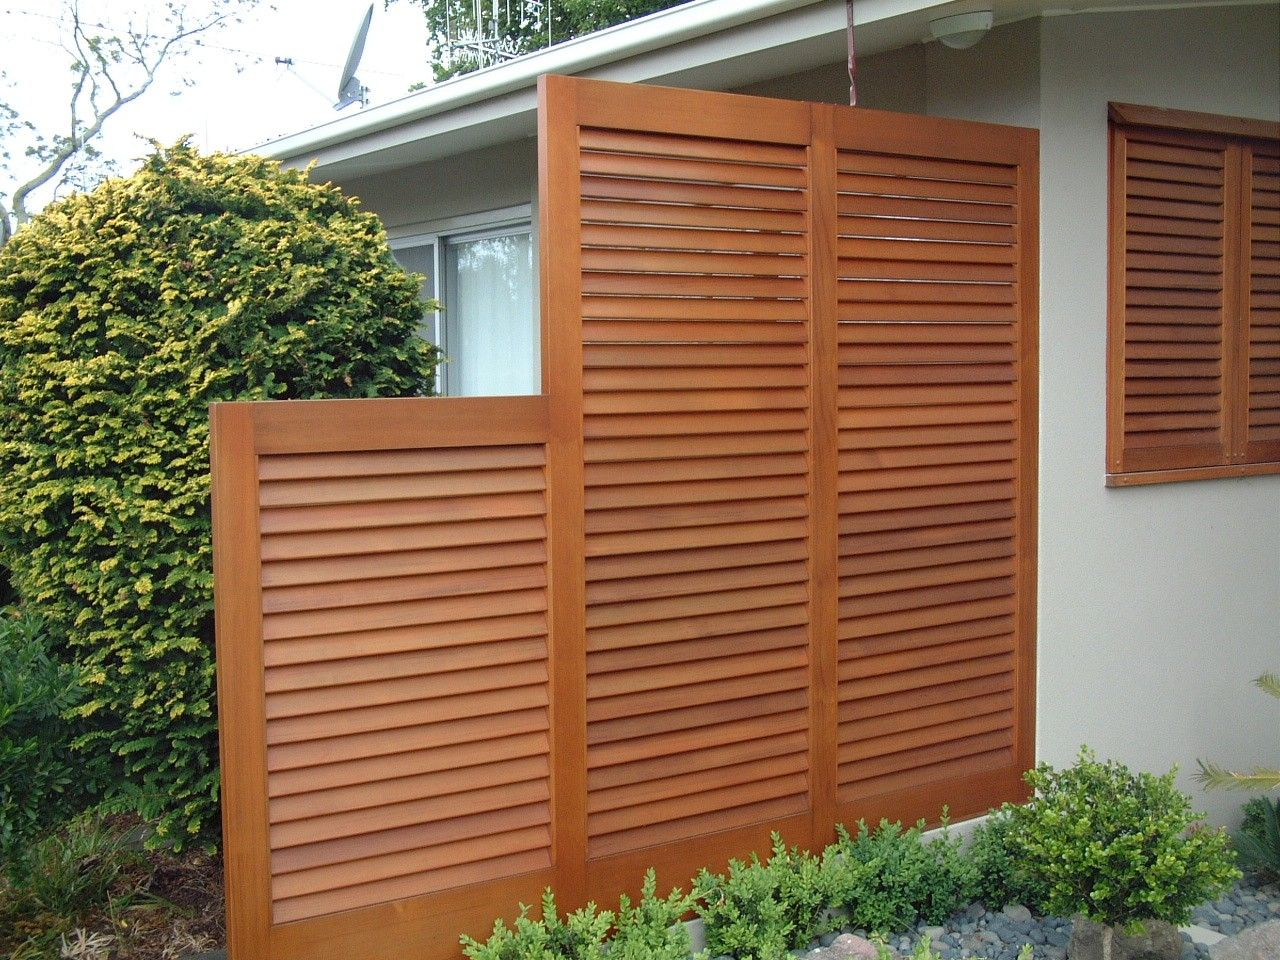 Beautiful exterior outdoor privacy screens shop at for Privacy screen ideas for backyard